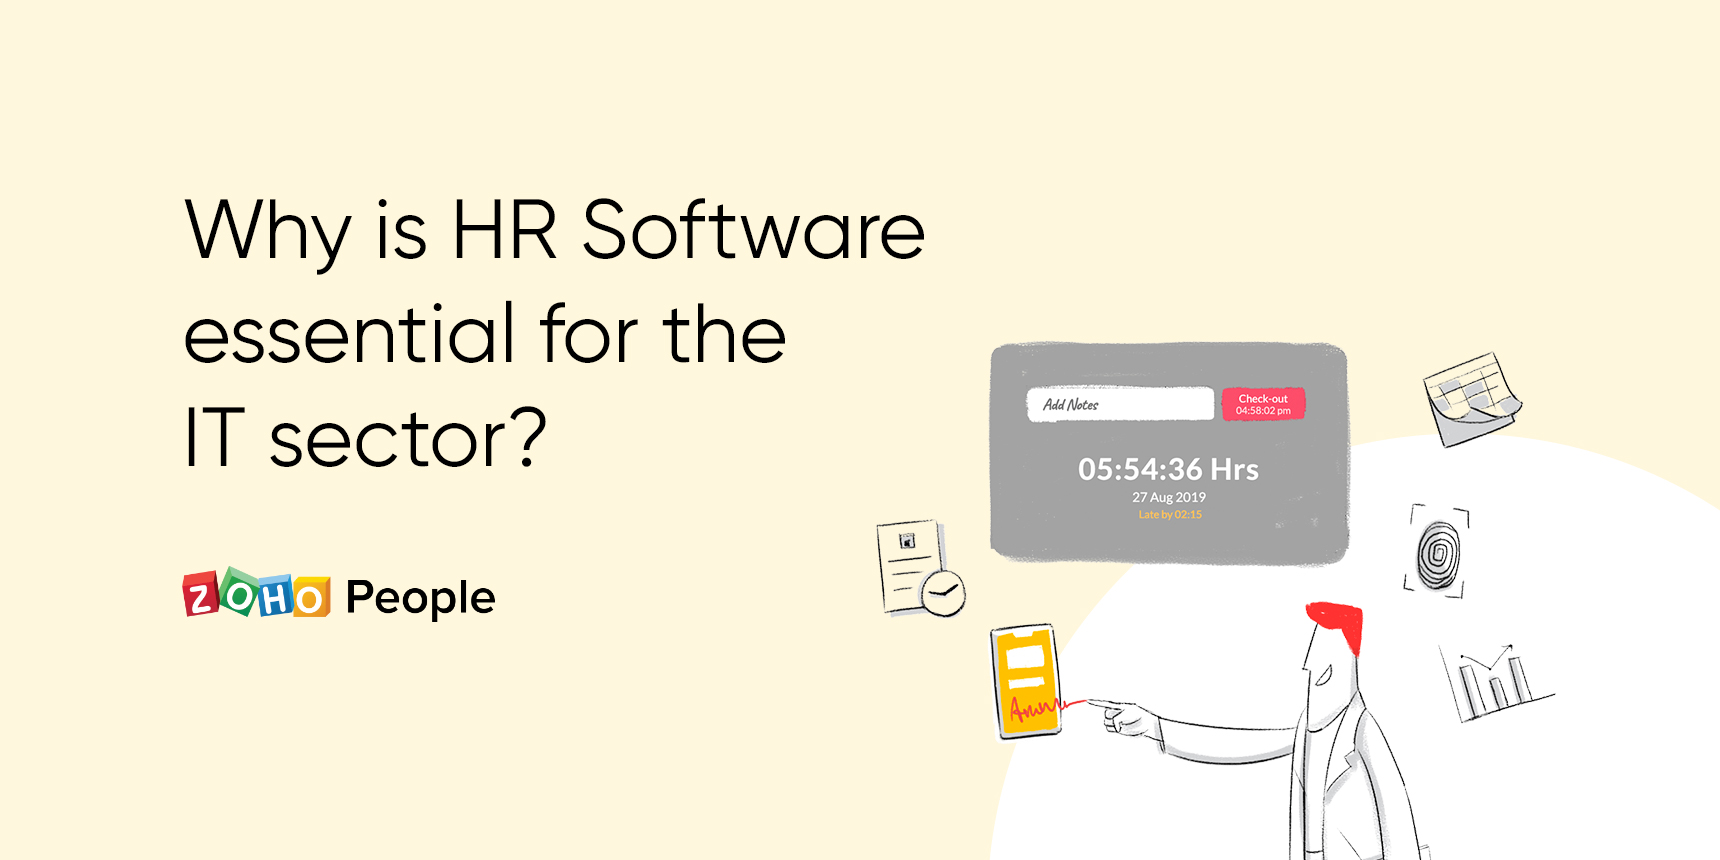 How can HR software benefit the IT sector?